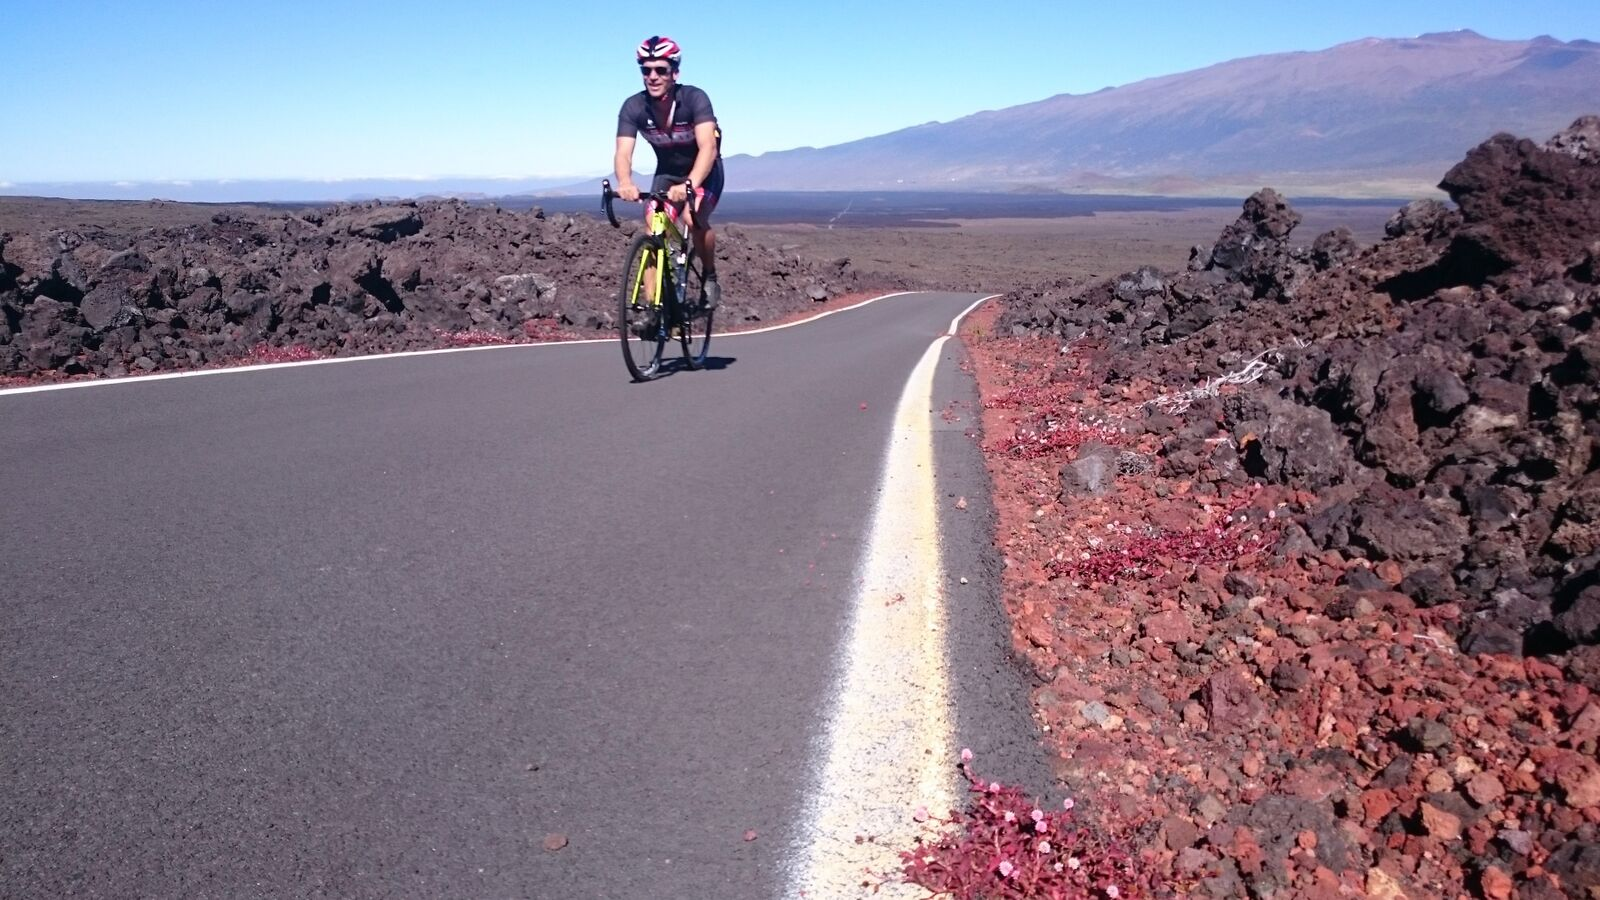 Ride part of Hawaii's Ironman bike course with Ride & Seek and Big Island Bike Tours